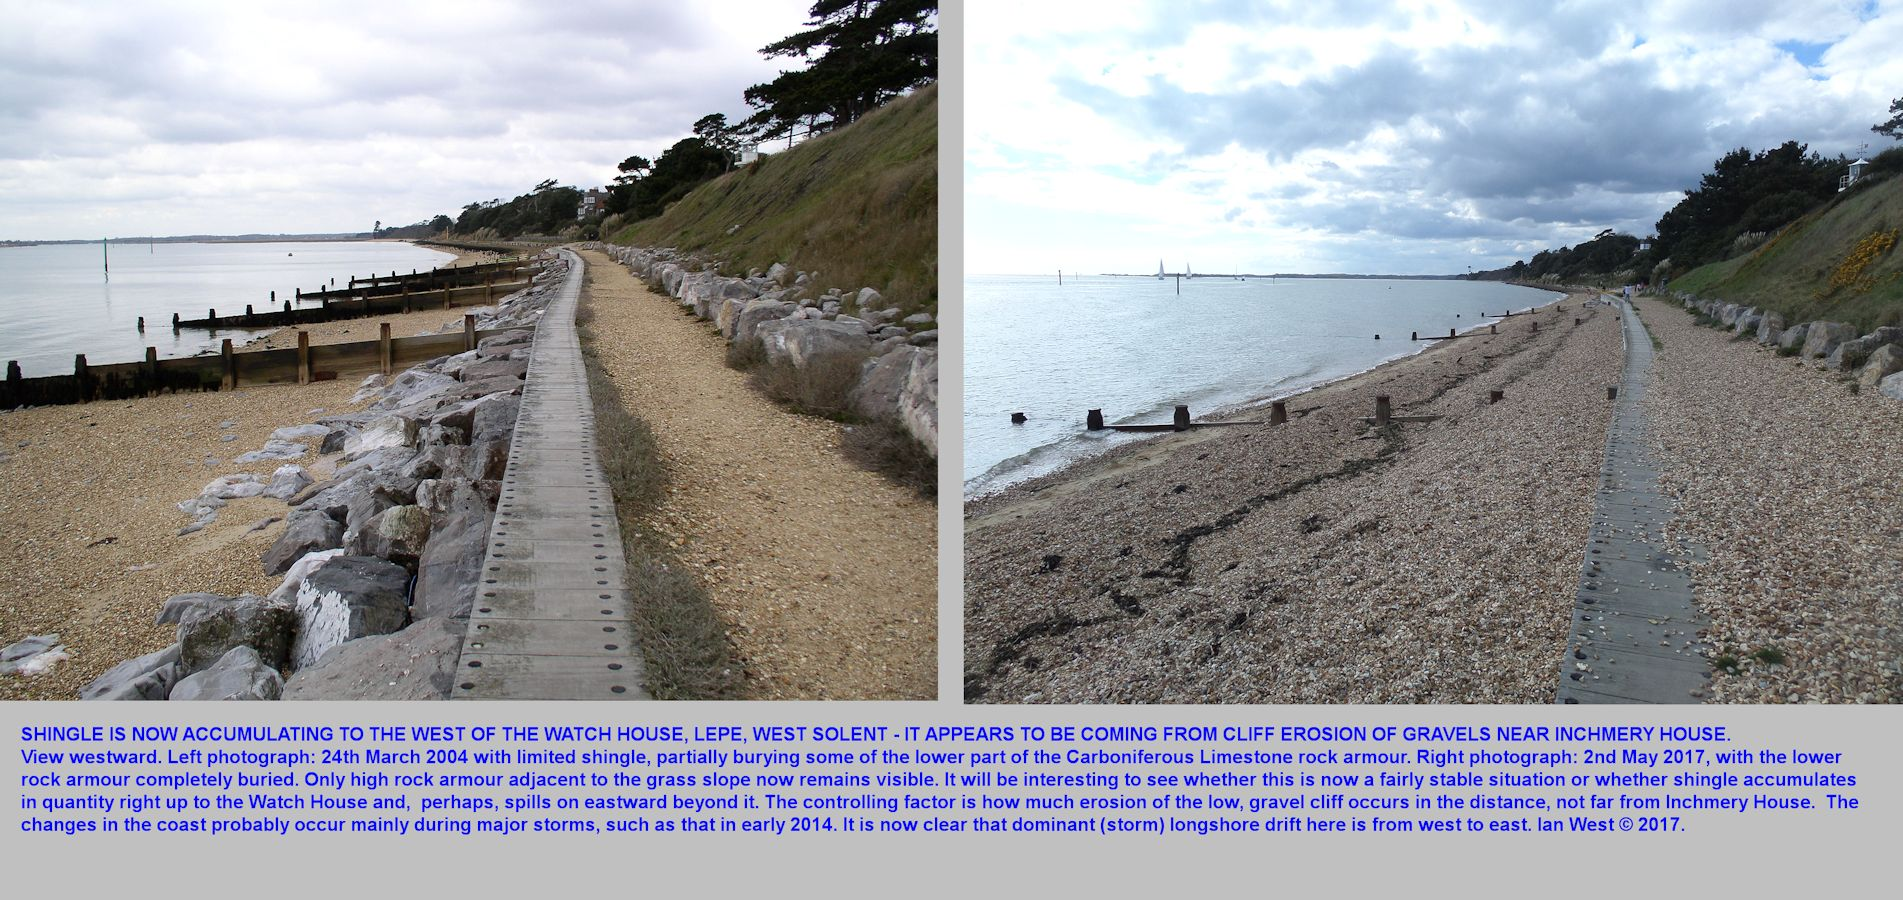 Comparative photographs showing eastward movement and build up of flint shingle west of the Watch House, Lepe Beach, Hampshire